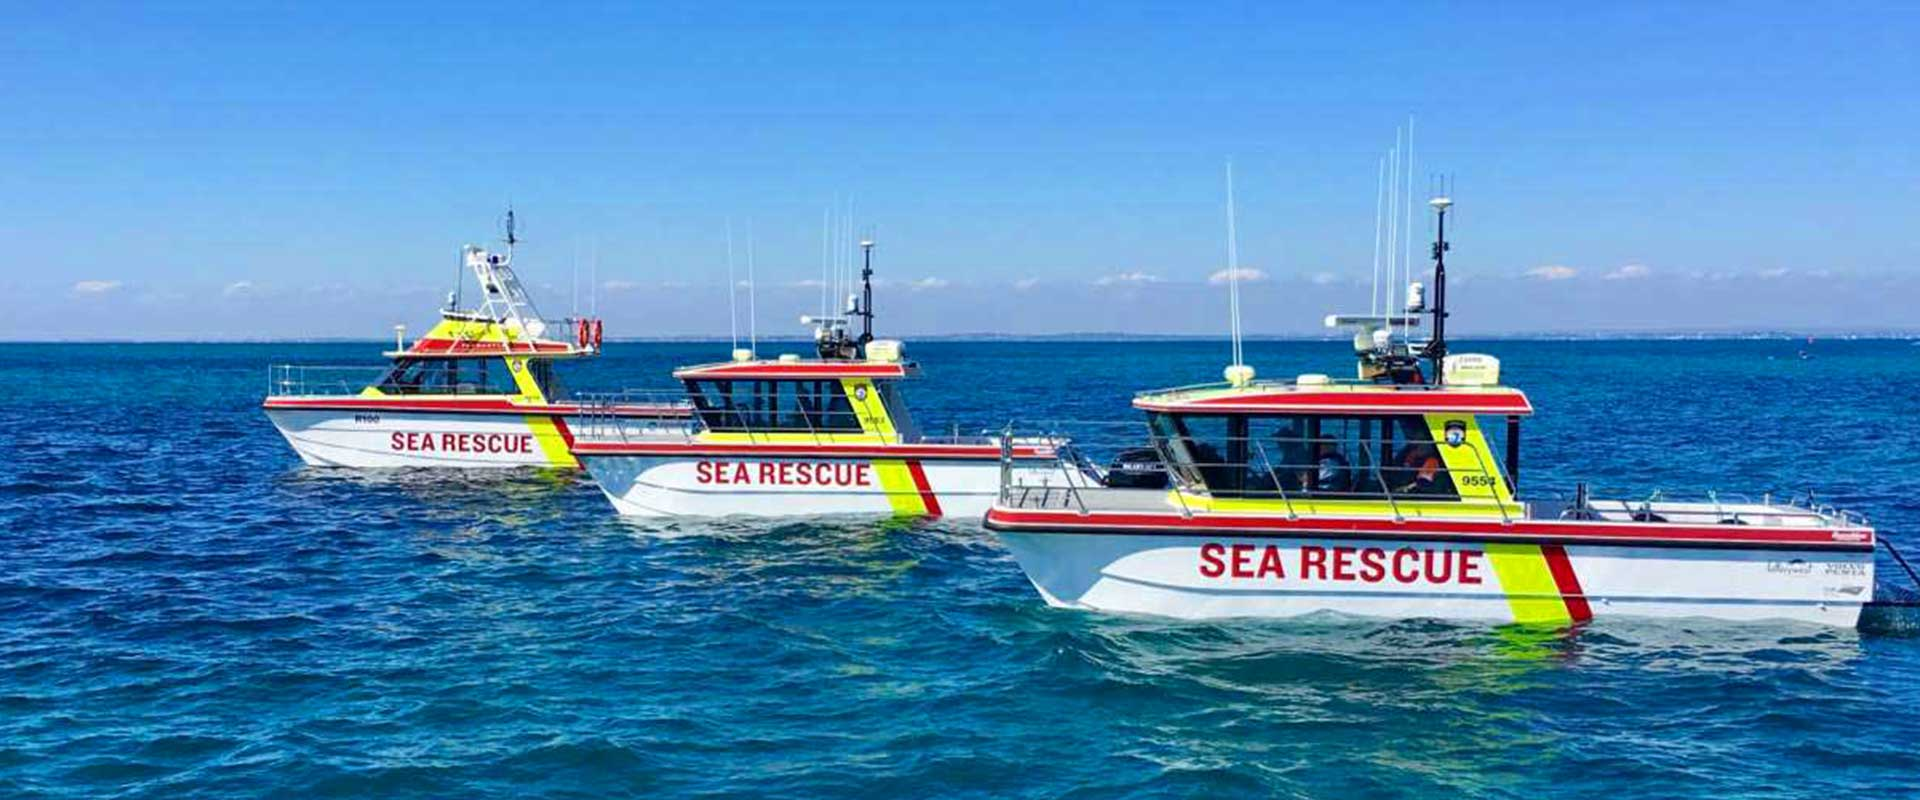 vehicle signage perth - Waterproof vehicle graphic for Sea Rescue Perth by Imagesource